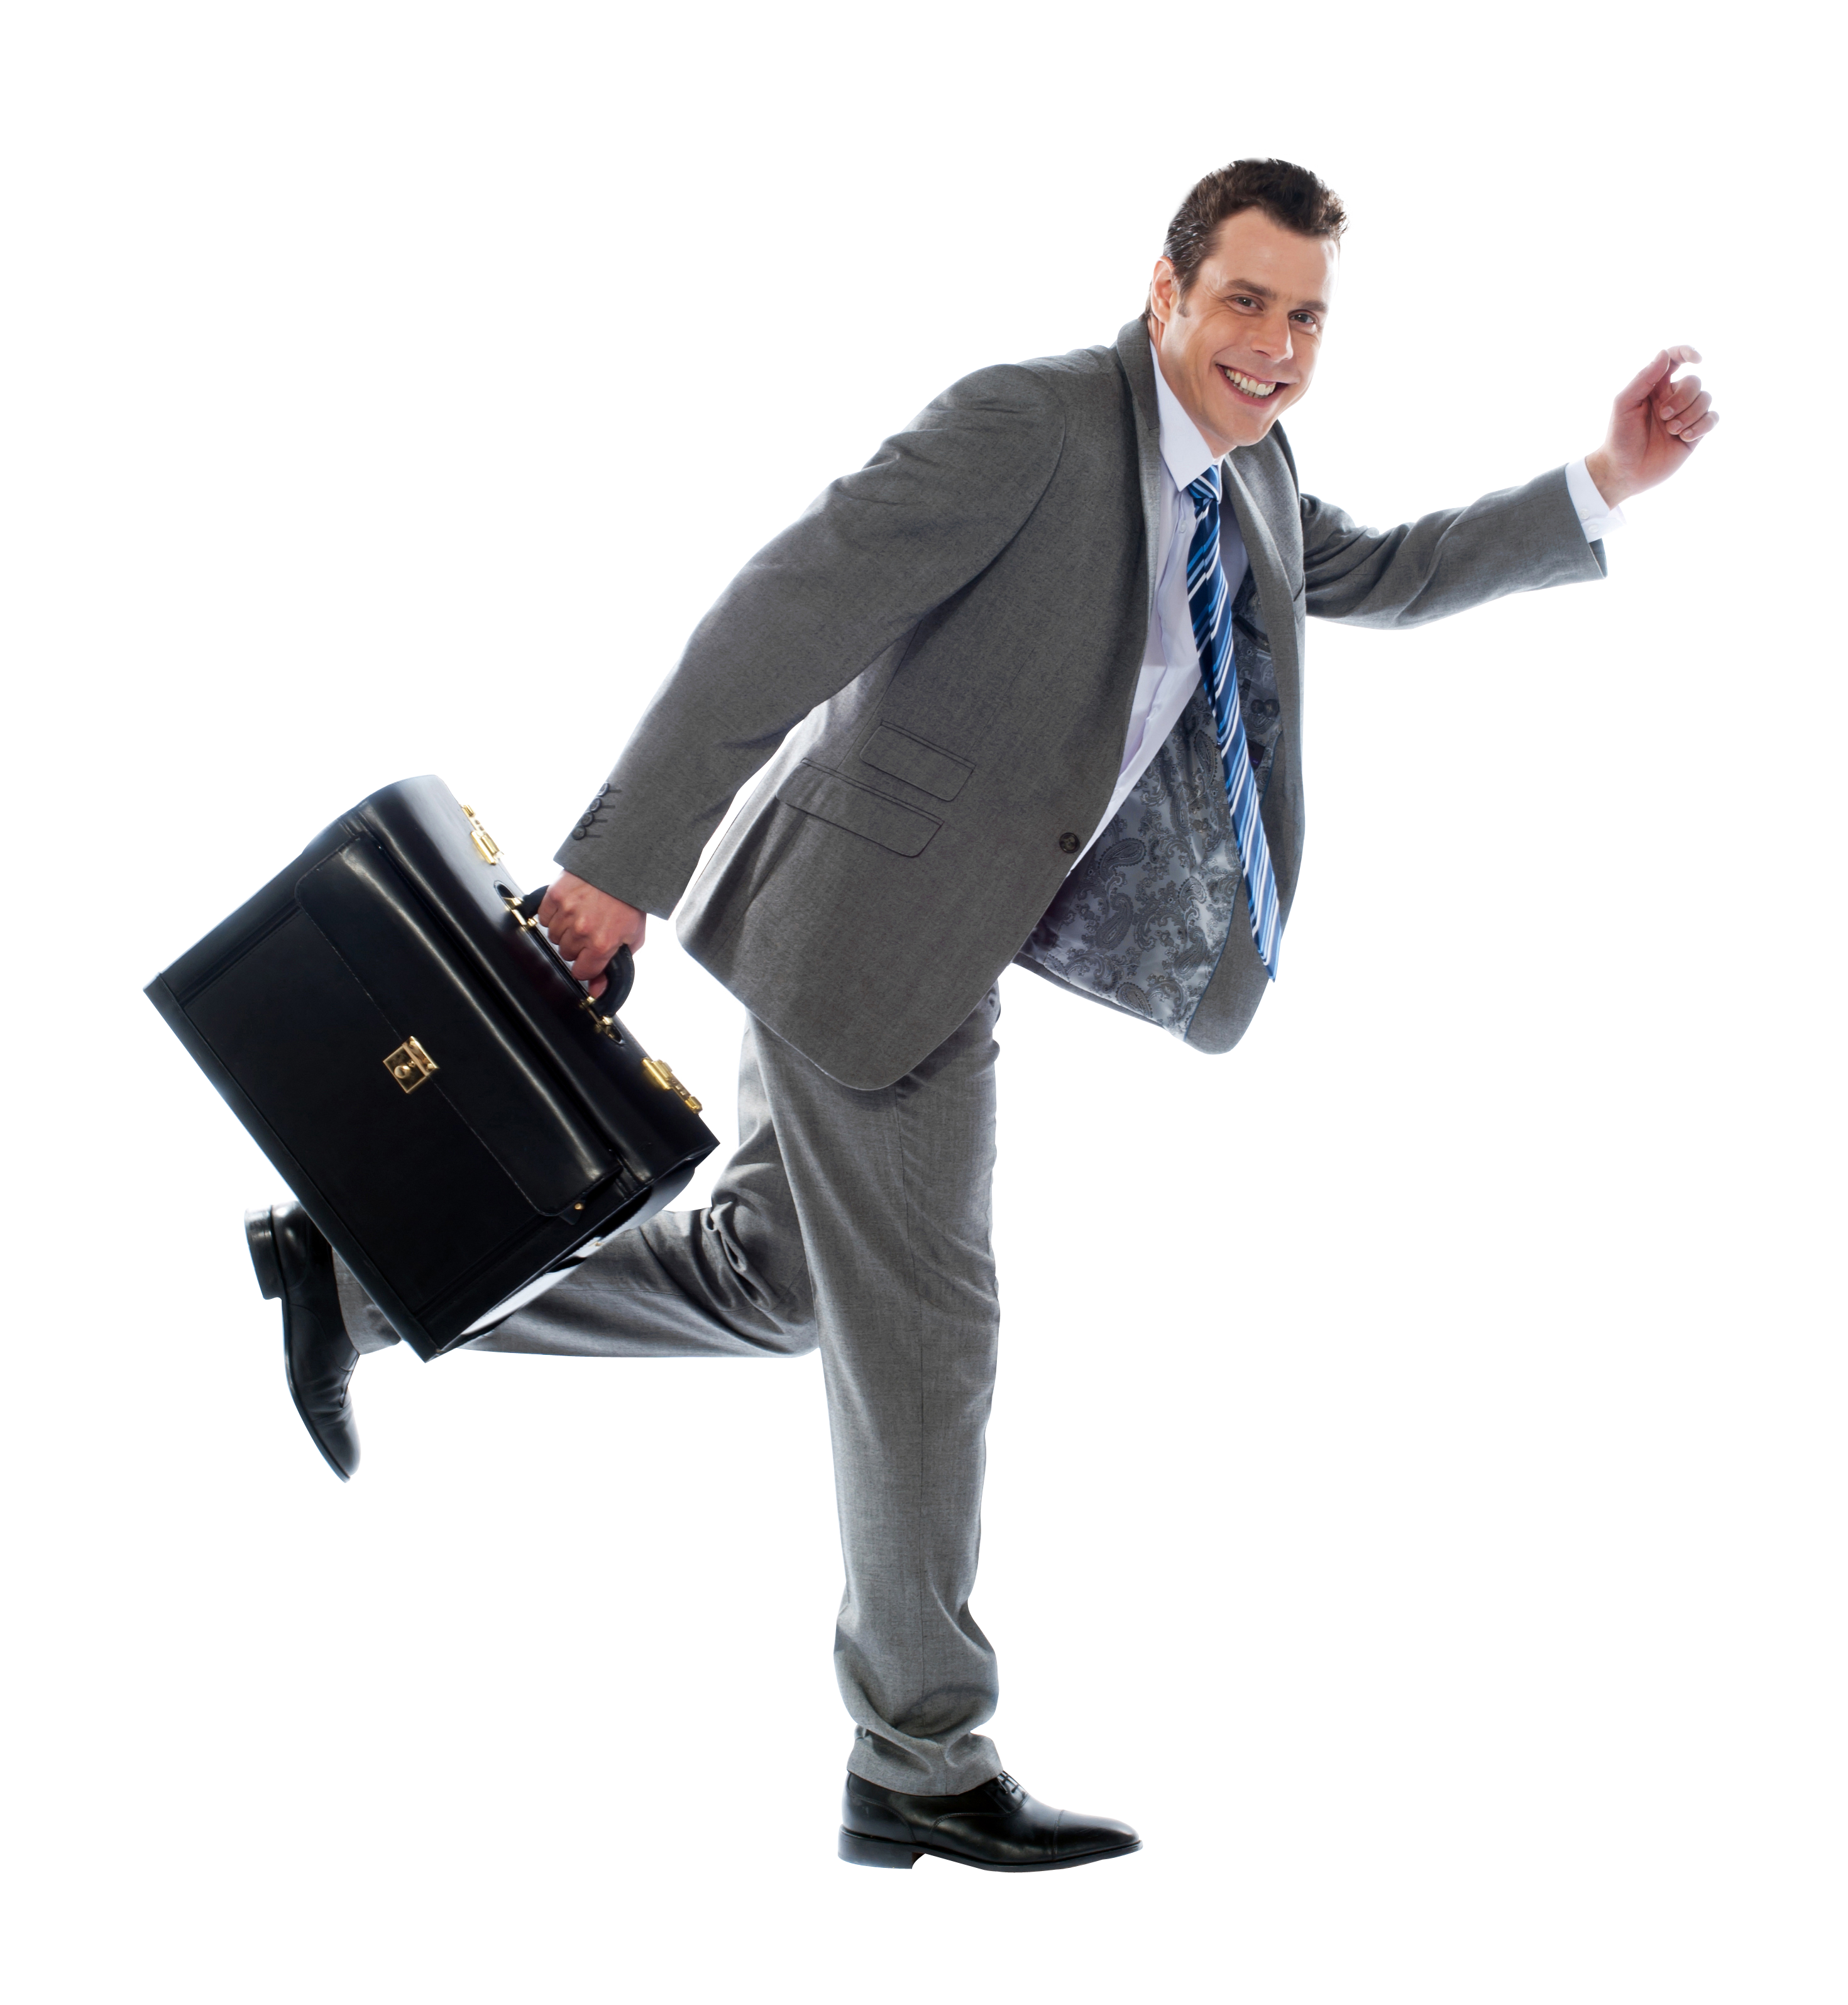 businessman with briefcase png image purepng free transparent